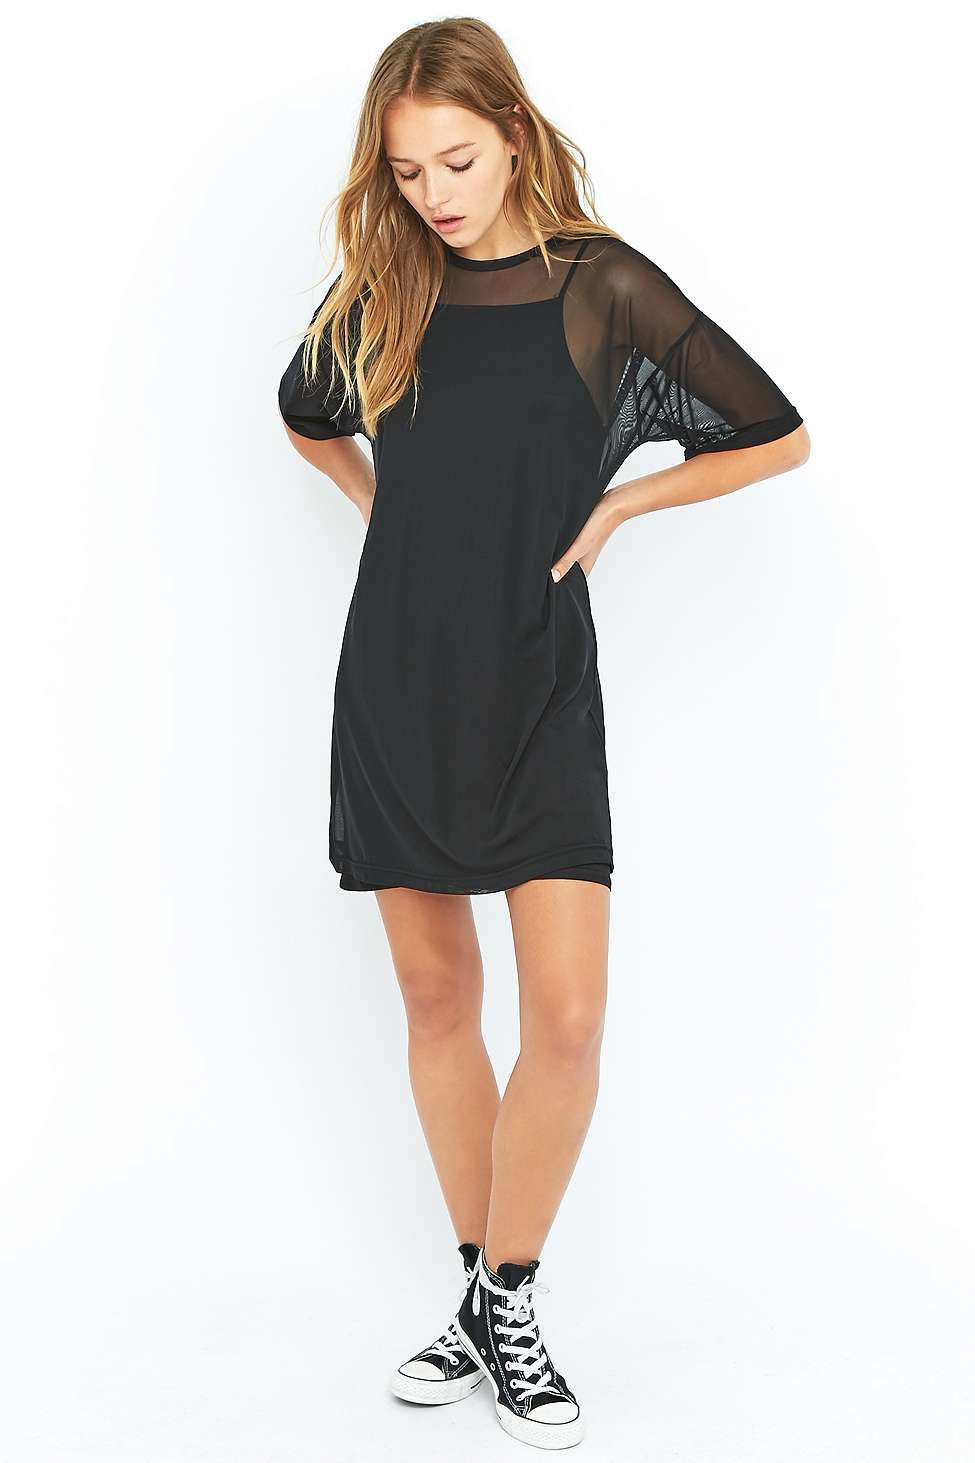 Sparkle & Fade Mesh T-shirt Dress   Robe, Urban outfitters and Urban